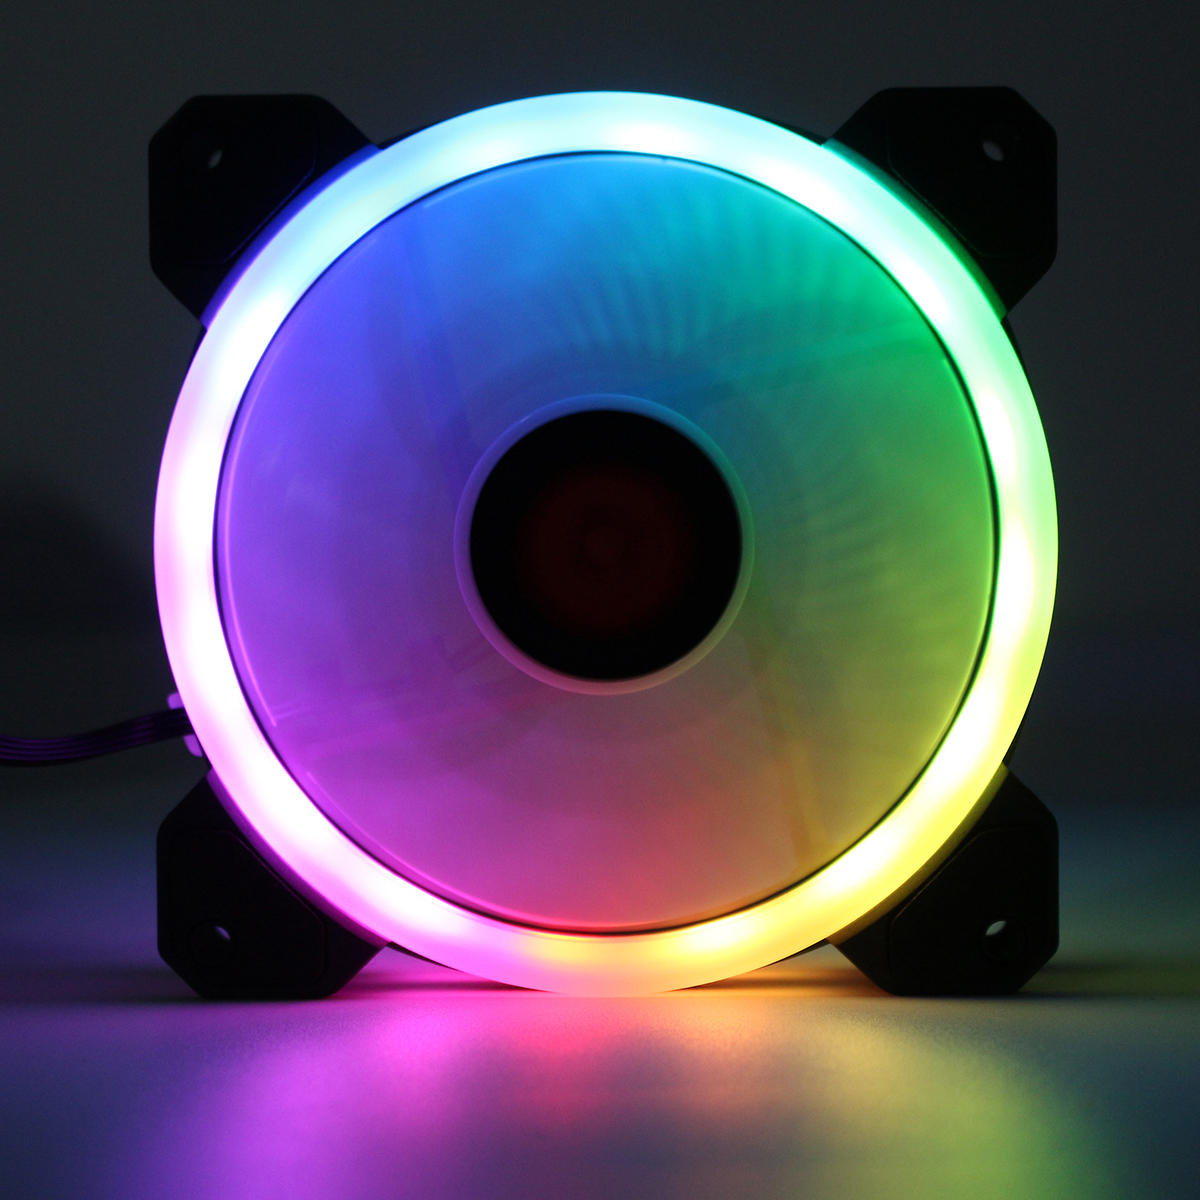 Coolmoon 6PCS 120mm Multilayer Backlit RGB Cooling Fan Computer Case PC CPU Cooling Fan with the Remote Control - 4